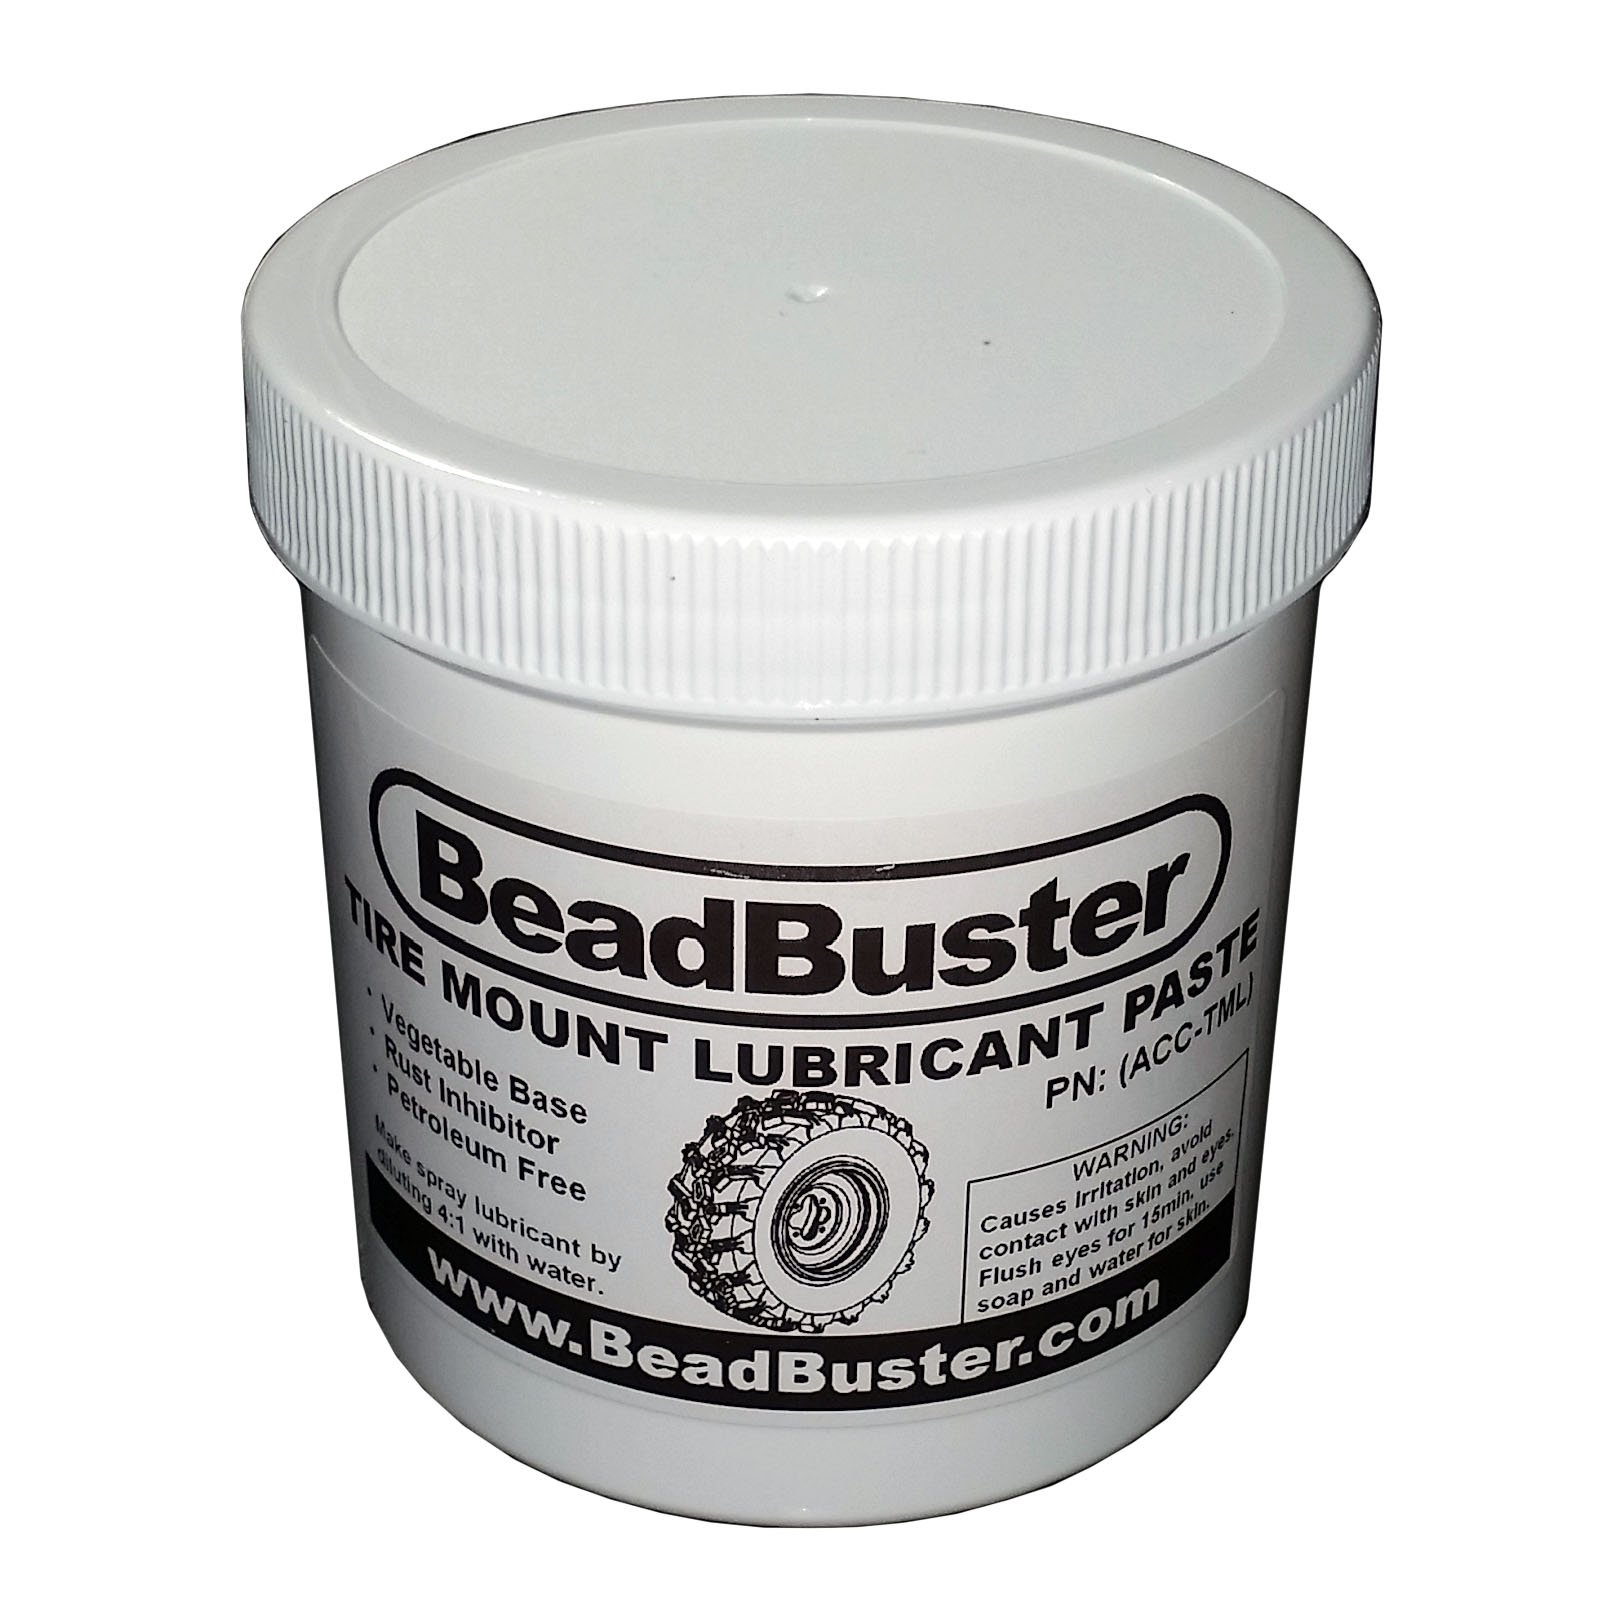 BeadBuster Tire Mounting Lubricant Paste, 1-Pint/16oz, Acc-TML by BeadBuster